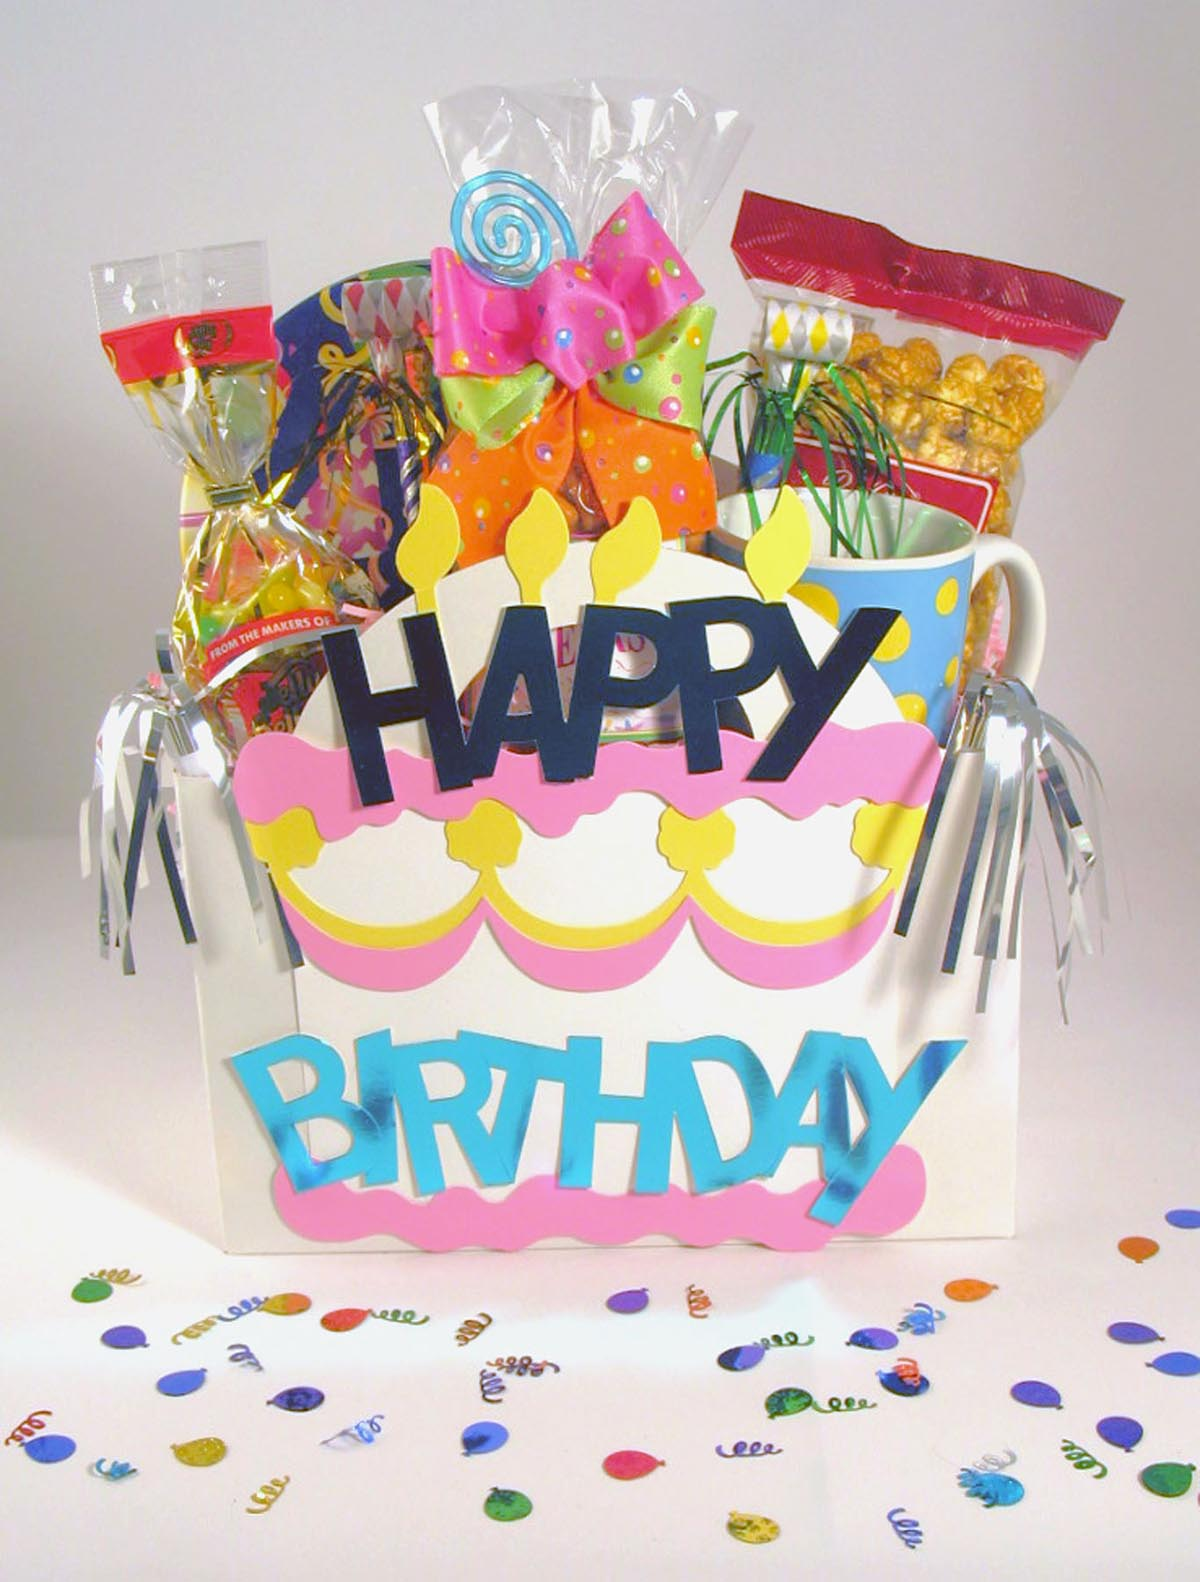 Warm greetings and wishes cool birthday cards